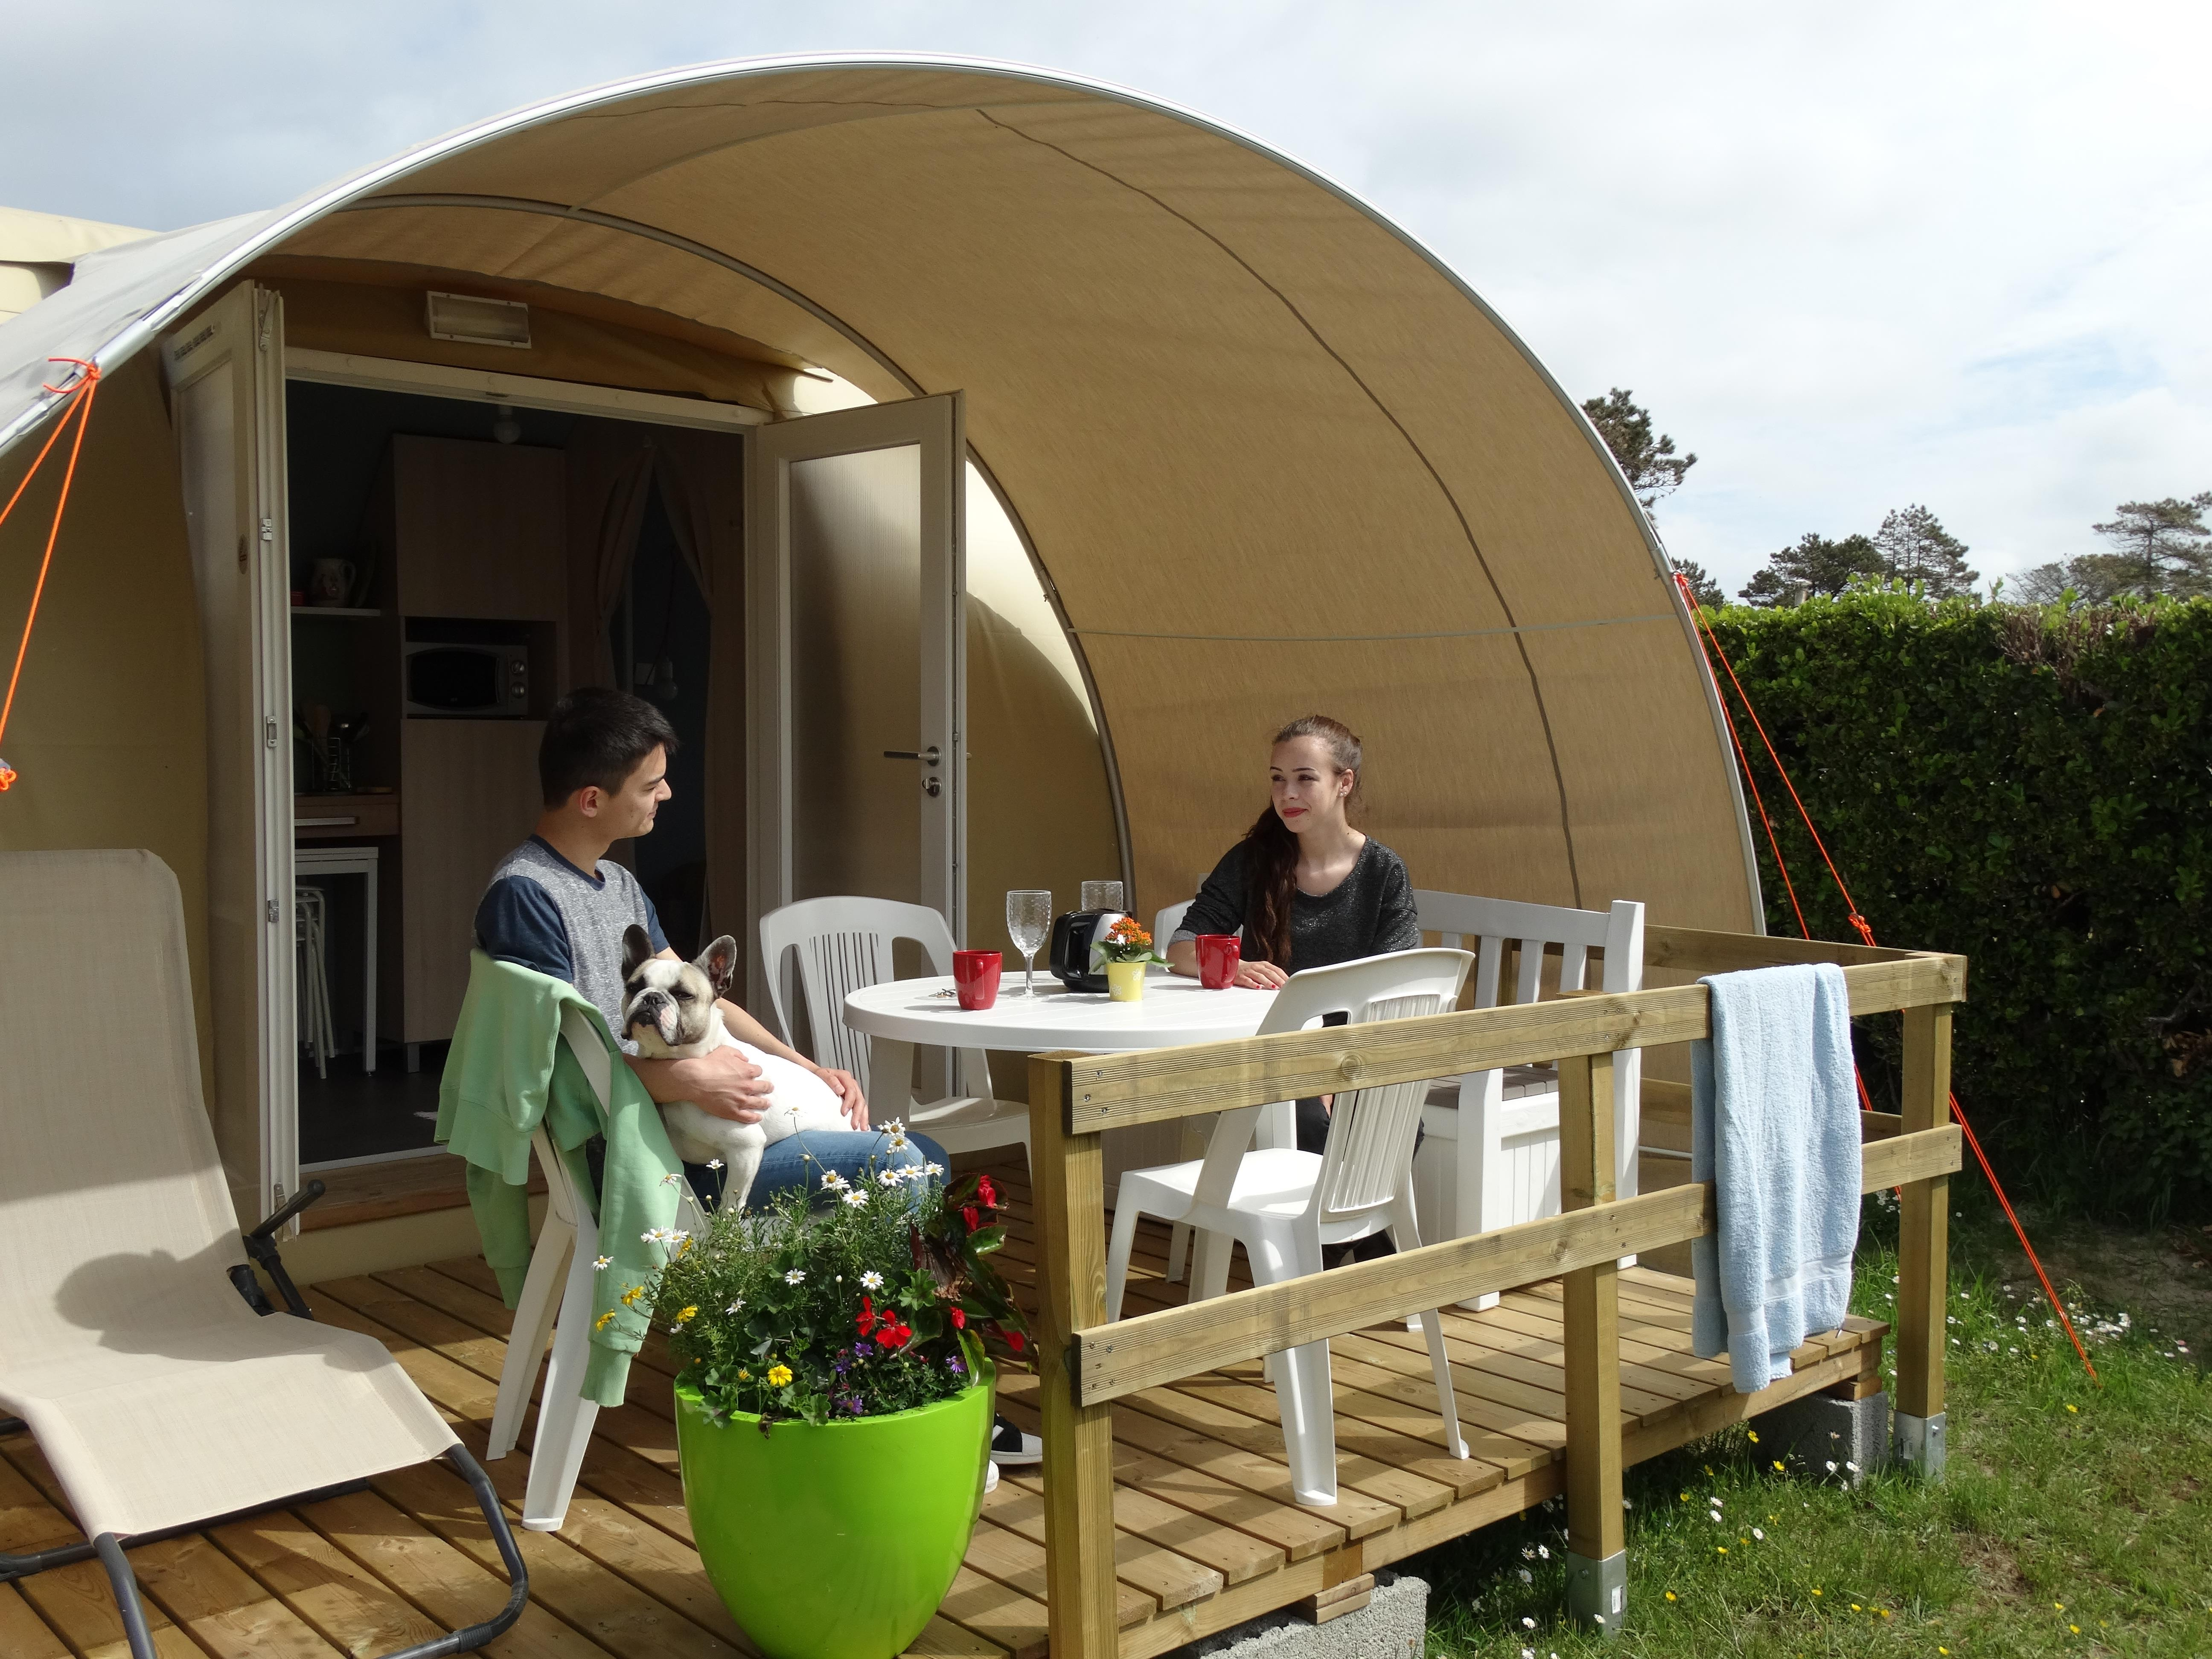 Huuraccommodatie - Coco Sweet (16M²) 4 Pers. Saturday To Saturday - CAMPING DES ABERS